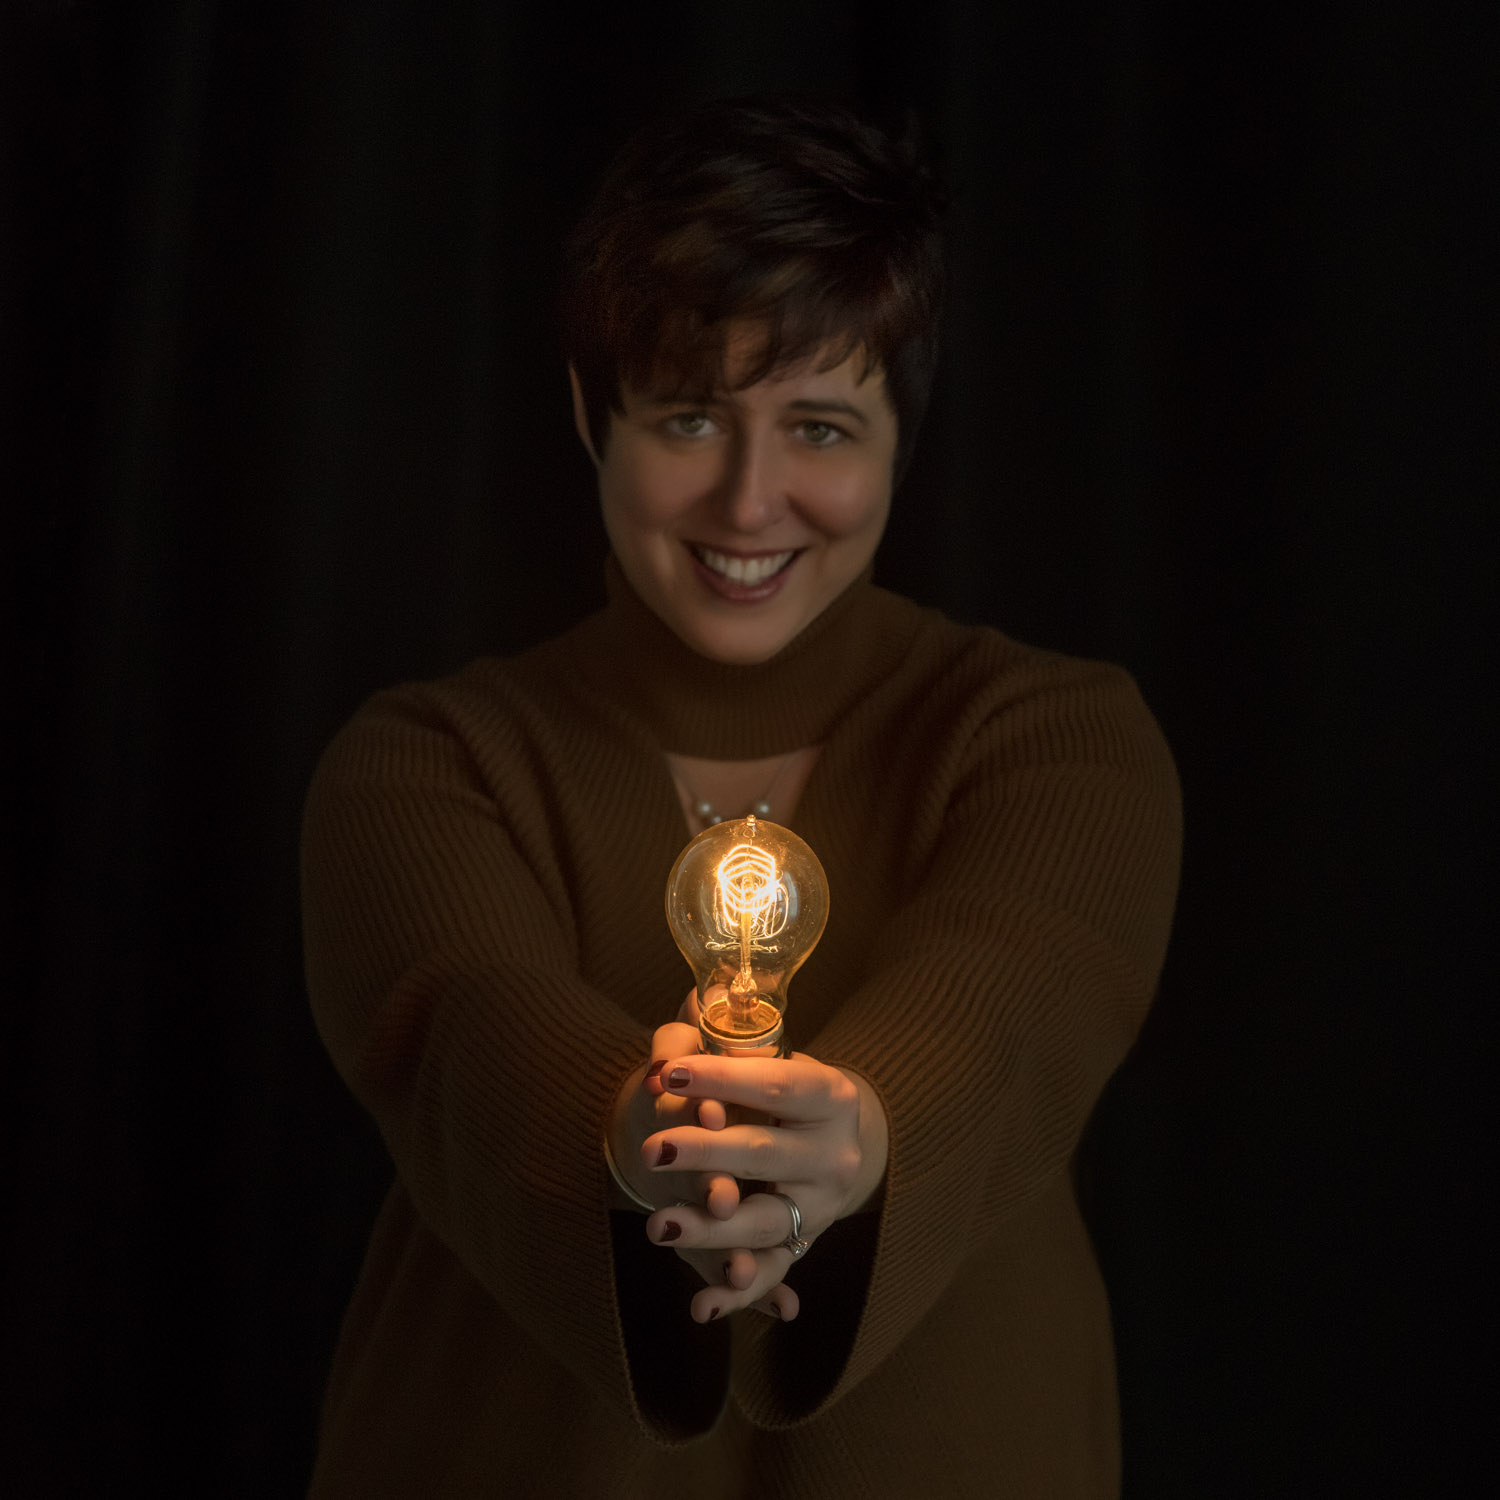 Doesn't she look a lot like Princess Di here? Jen and Princess Di share a sweet shyness and generosity of spirit.  An Edison-style light bulb is the logo for Foster Growth, and I just happen to have one in my studio. After removing it from the lamp so that she could hold it, I used Photoshop to disappear the cord.